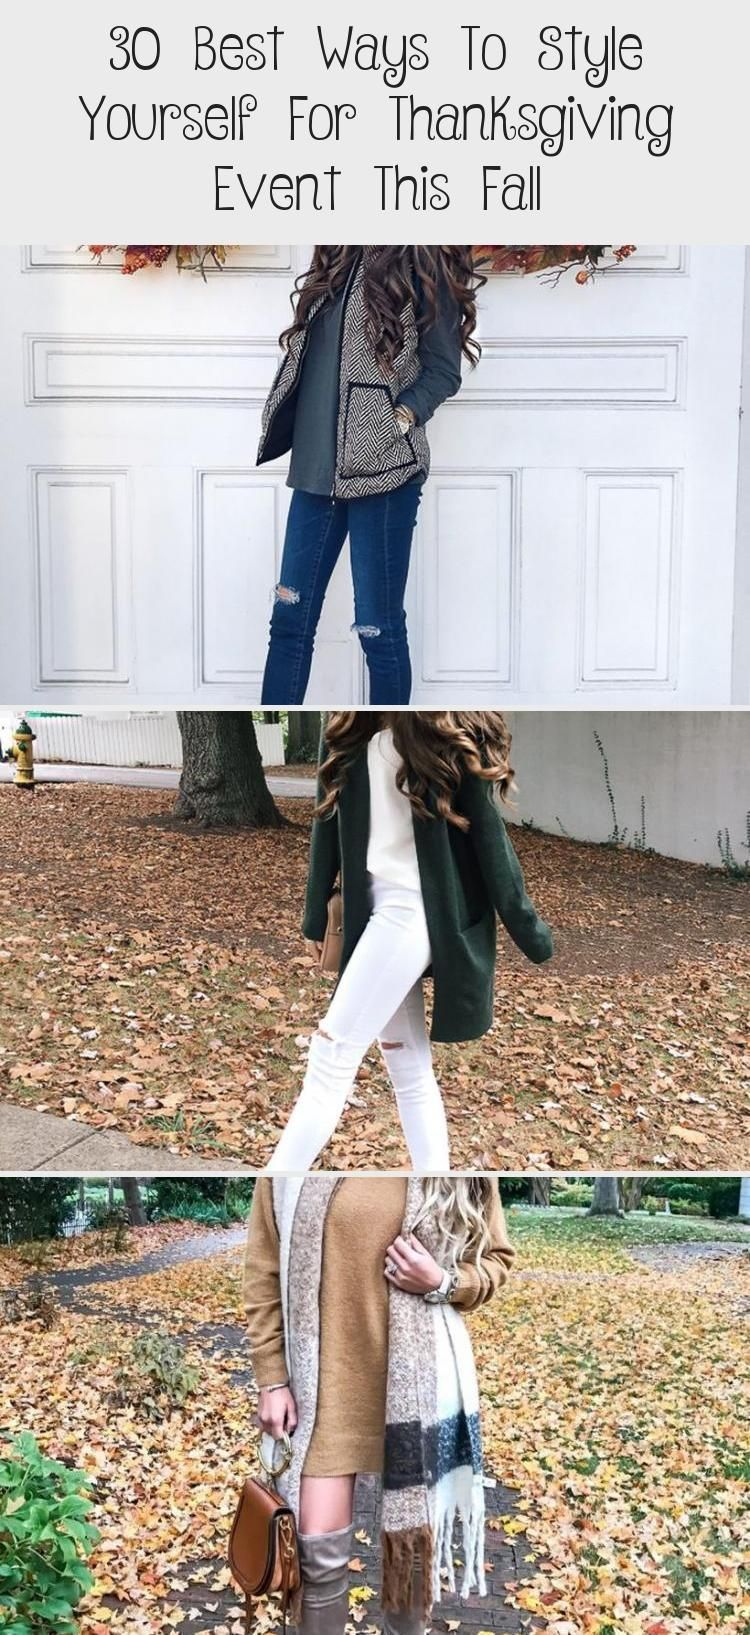 30 Best Ways To Style Yourself For Thanksgiving Event This Fall - FASHIONATE | A2VIDS -  30 Best Ways to Style Yourself for Thanksgiving Event this Fall #Fall Outfit, # #falloutfit #Thanks - #A2VIDS #Event #Fall #FASHIONATE #Style #Thanksgiving #Ways